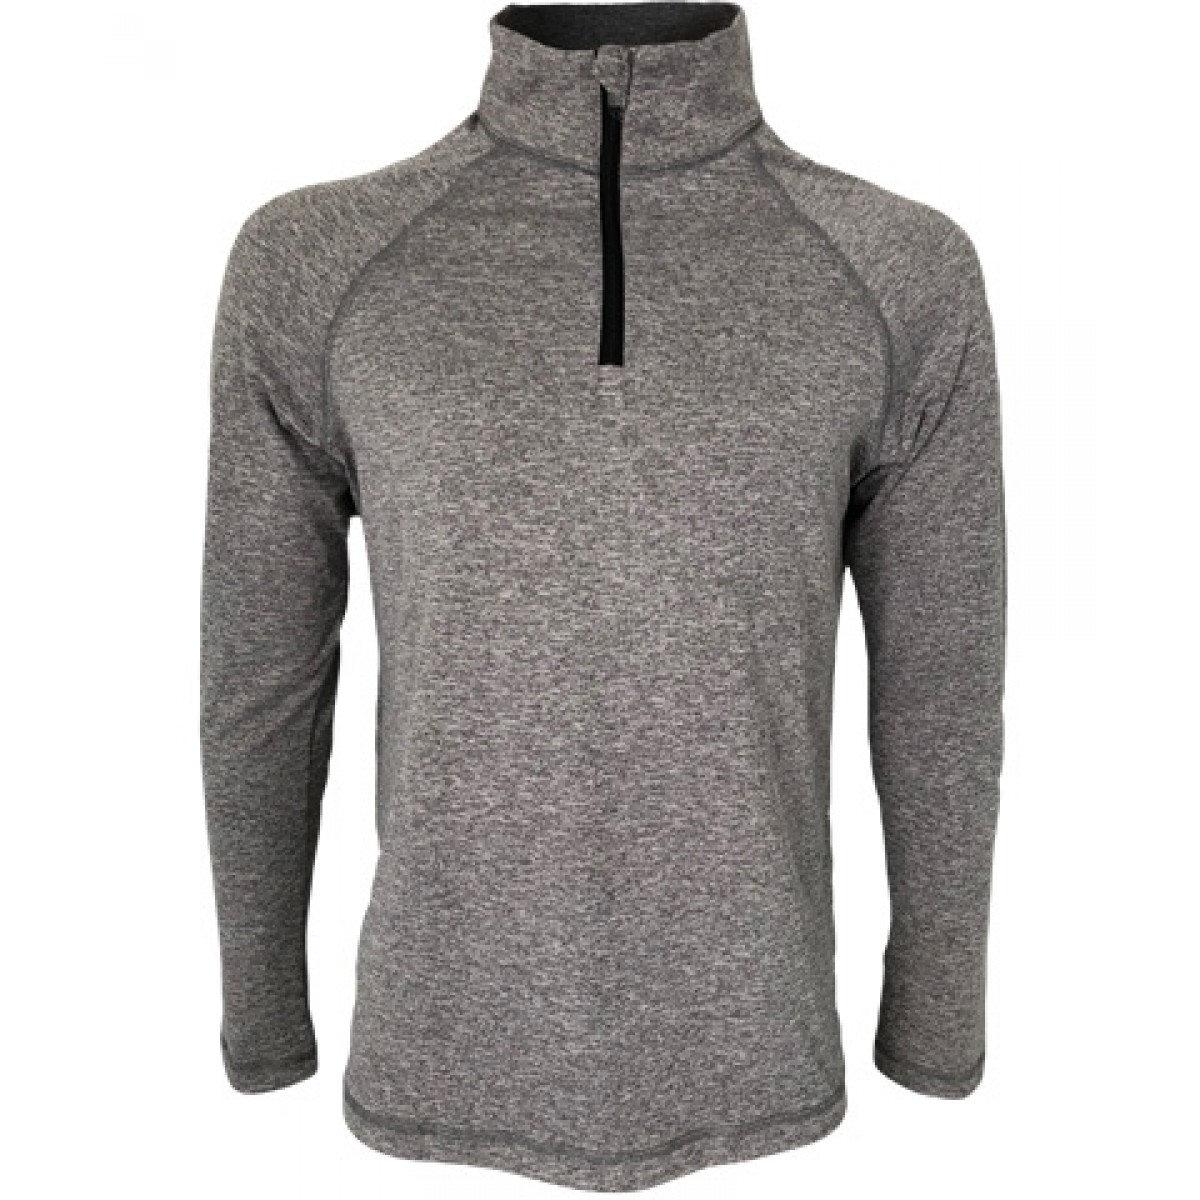 Men's Quarter-Zip Lightweight Pullover-Gray -2XL